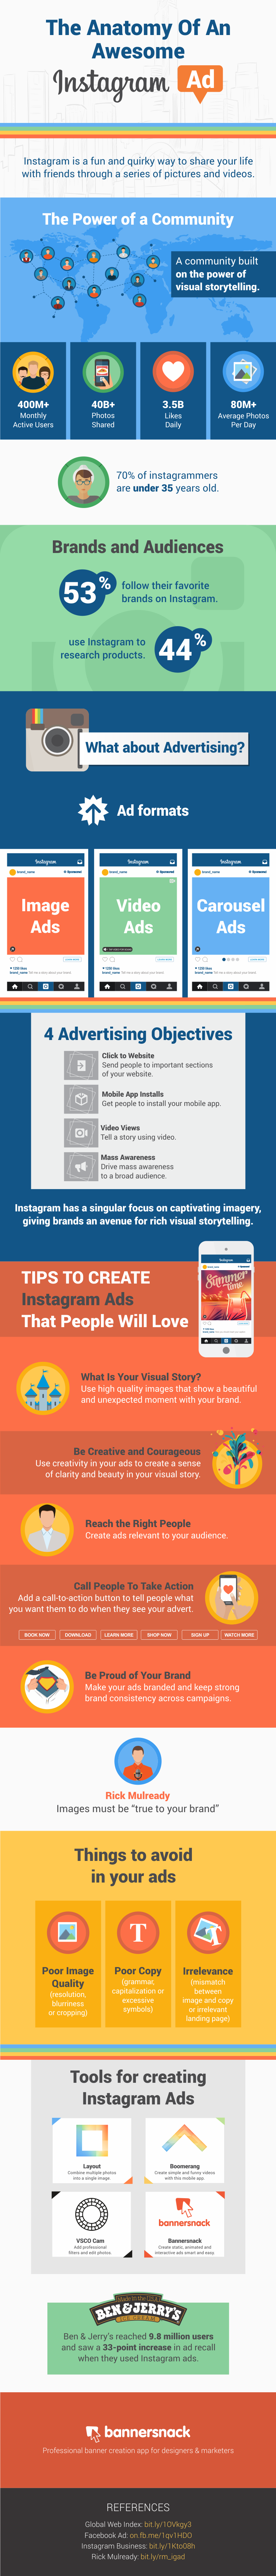 The Anatomy of an Awesome Instagram Ad #infographic